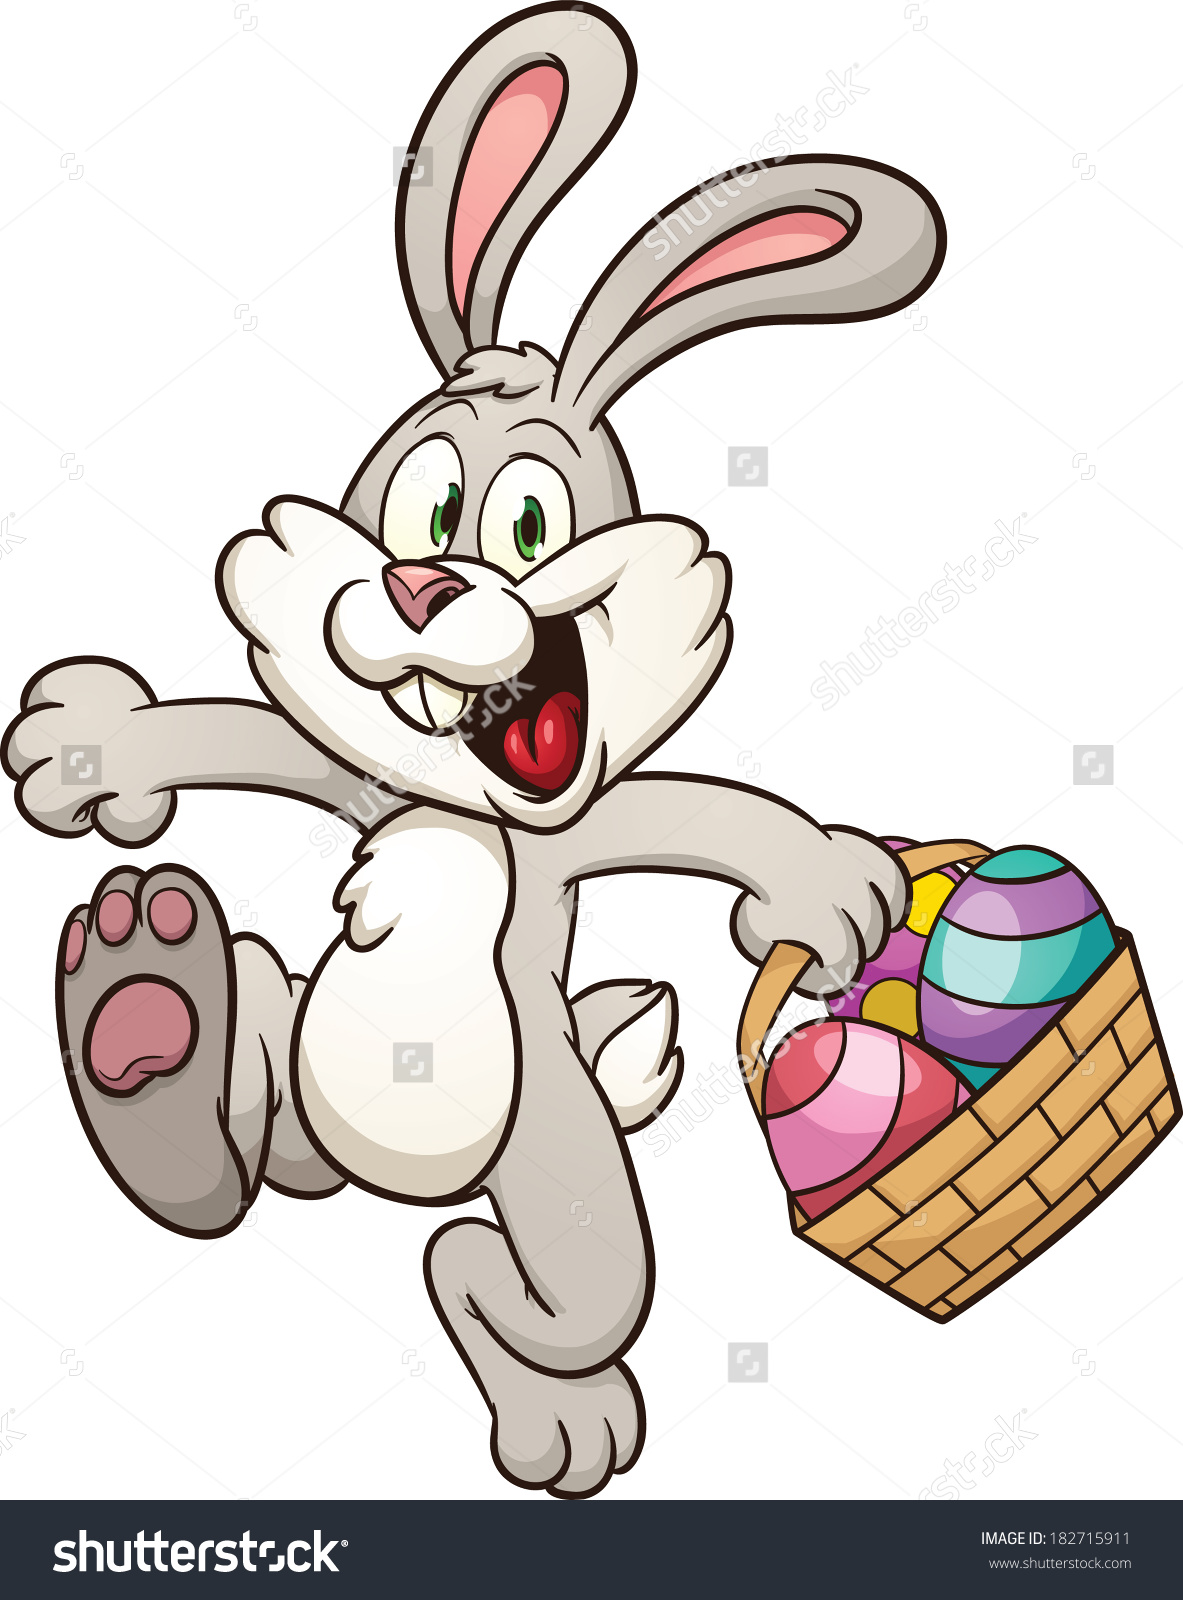 Hopping Easter Bunny Clipart ... Save to-Hopping Easter Bunny Clipart ... Save to a lightbox-18